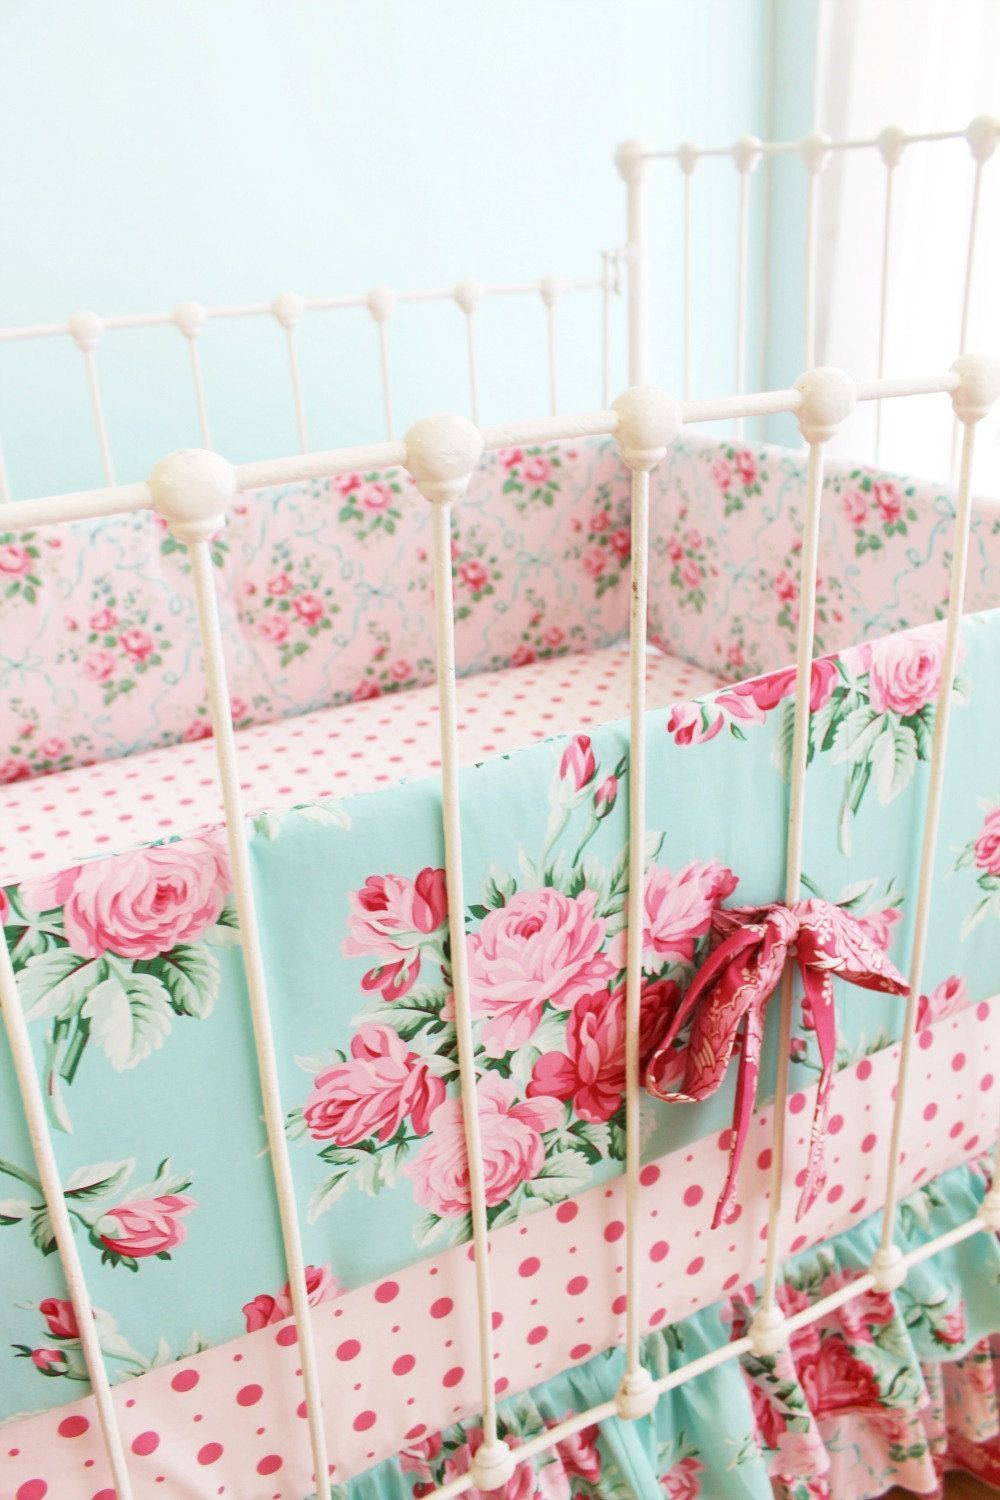 12 Pcs Bamboo Crochet Hook Set Special Giveaway Baby Girl Crib Bedding Baby Girl Bedding Shabby Chic Baby